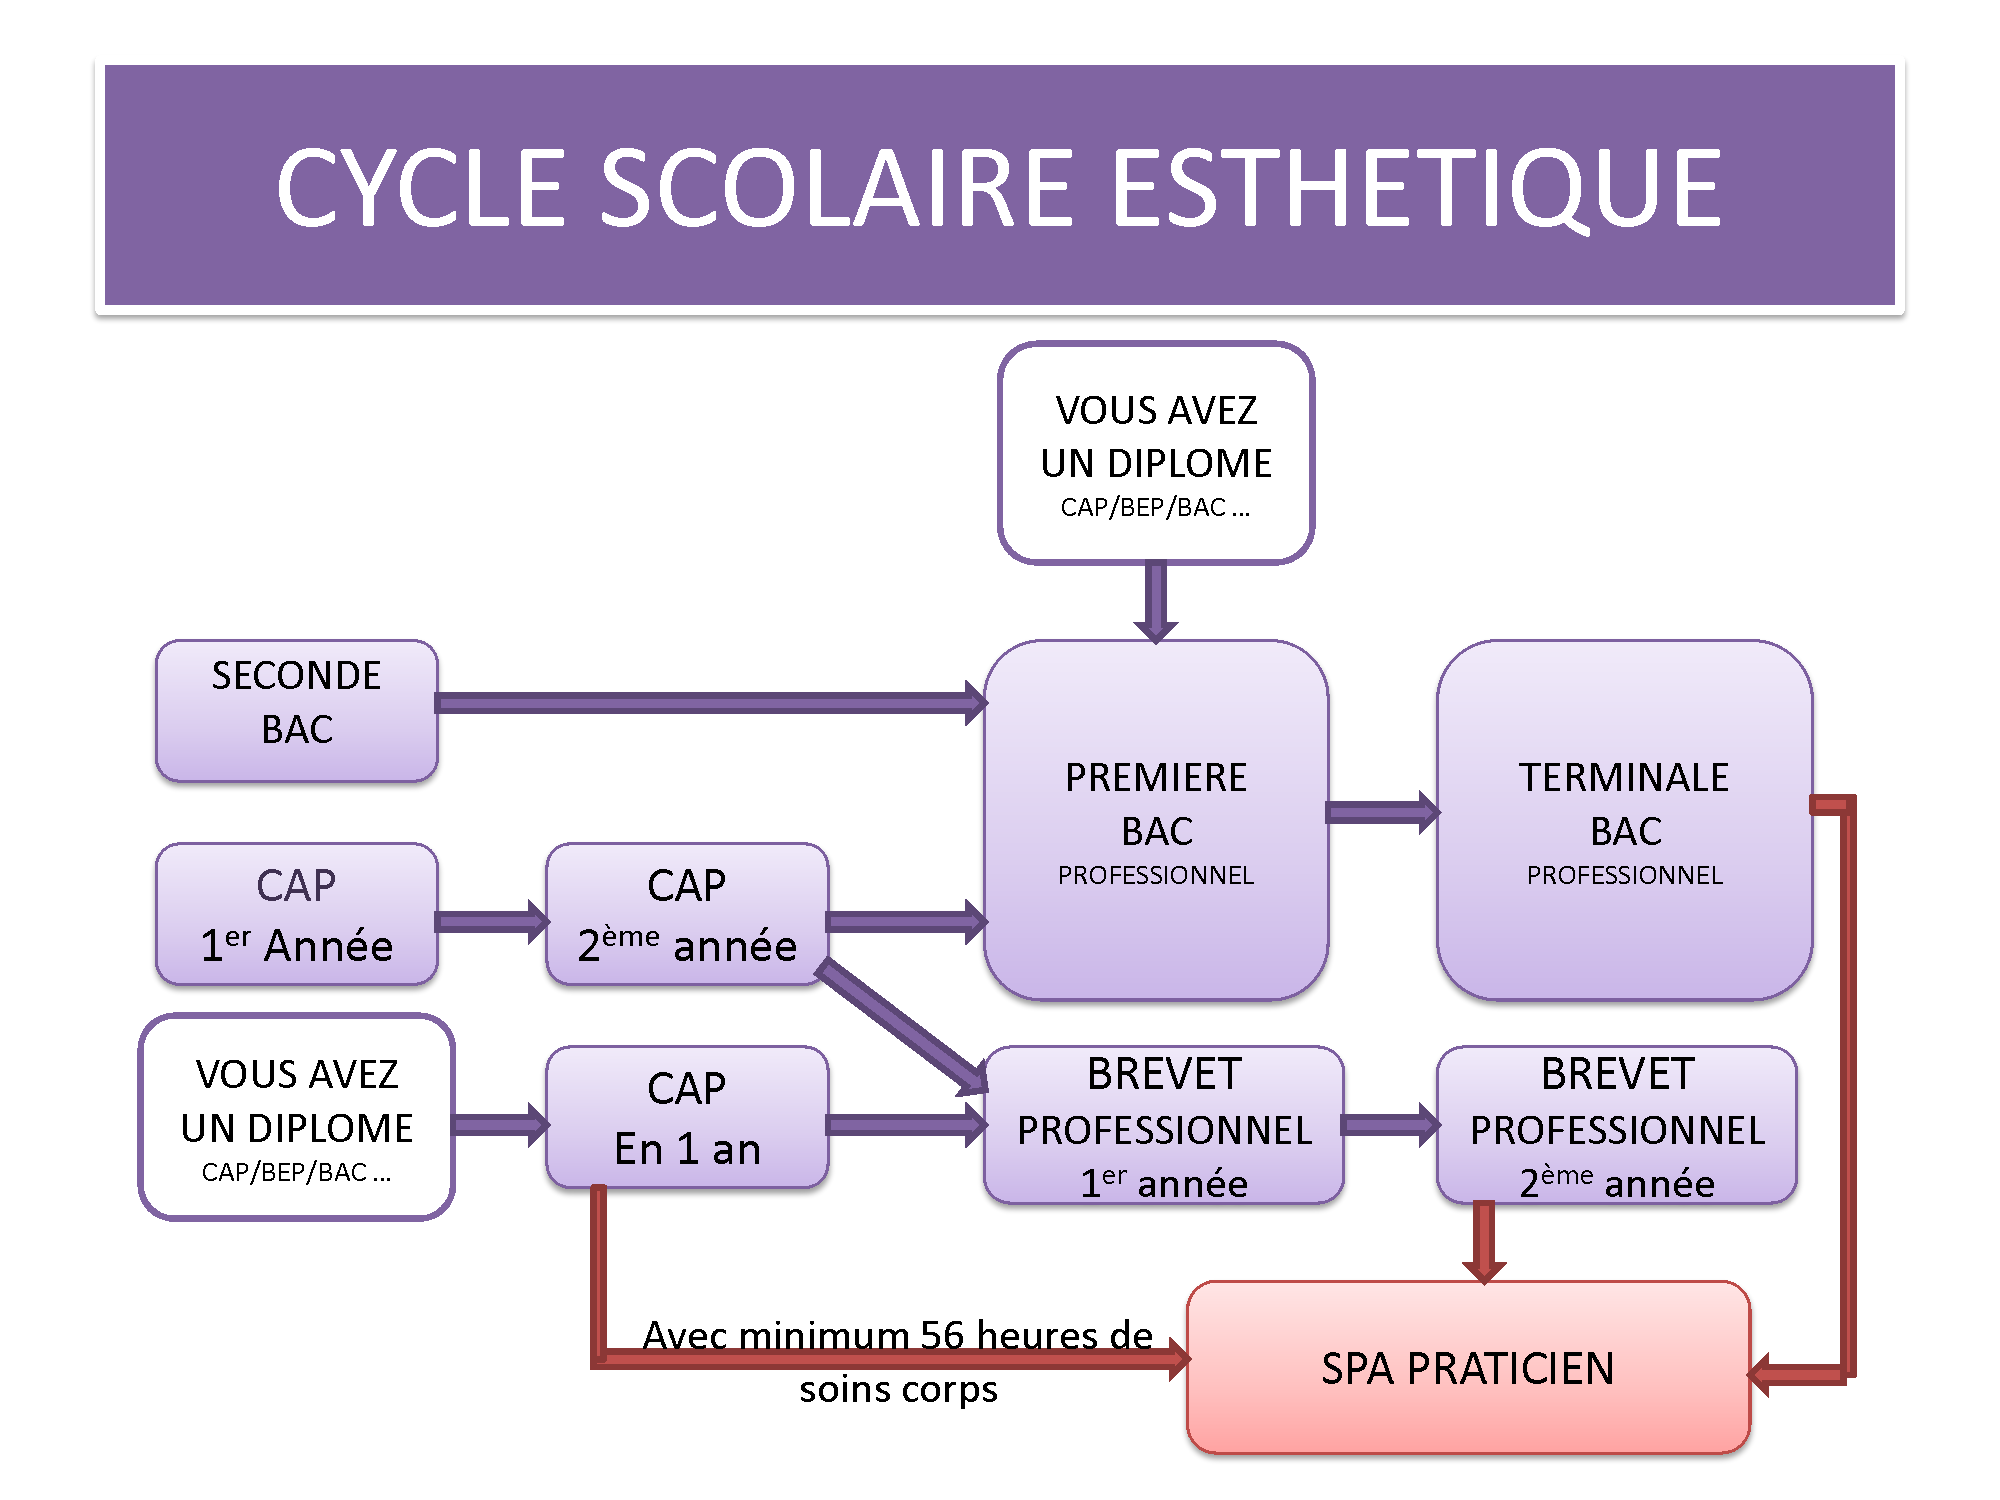 PLAN DE CARRIERE ESTHETIQUE